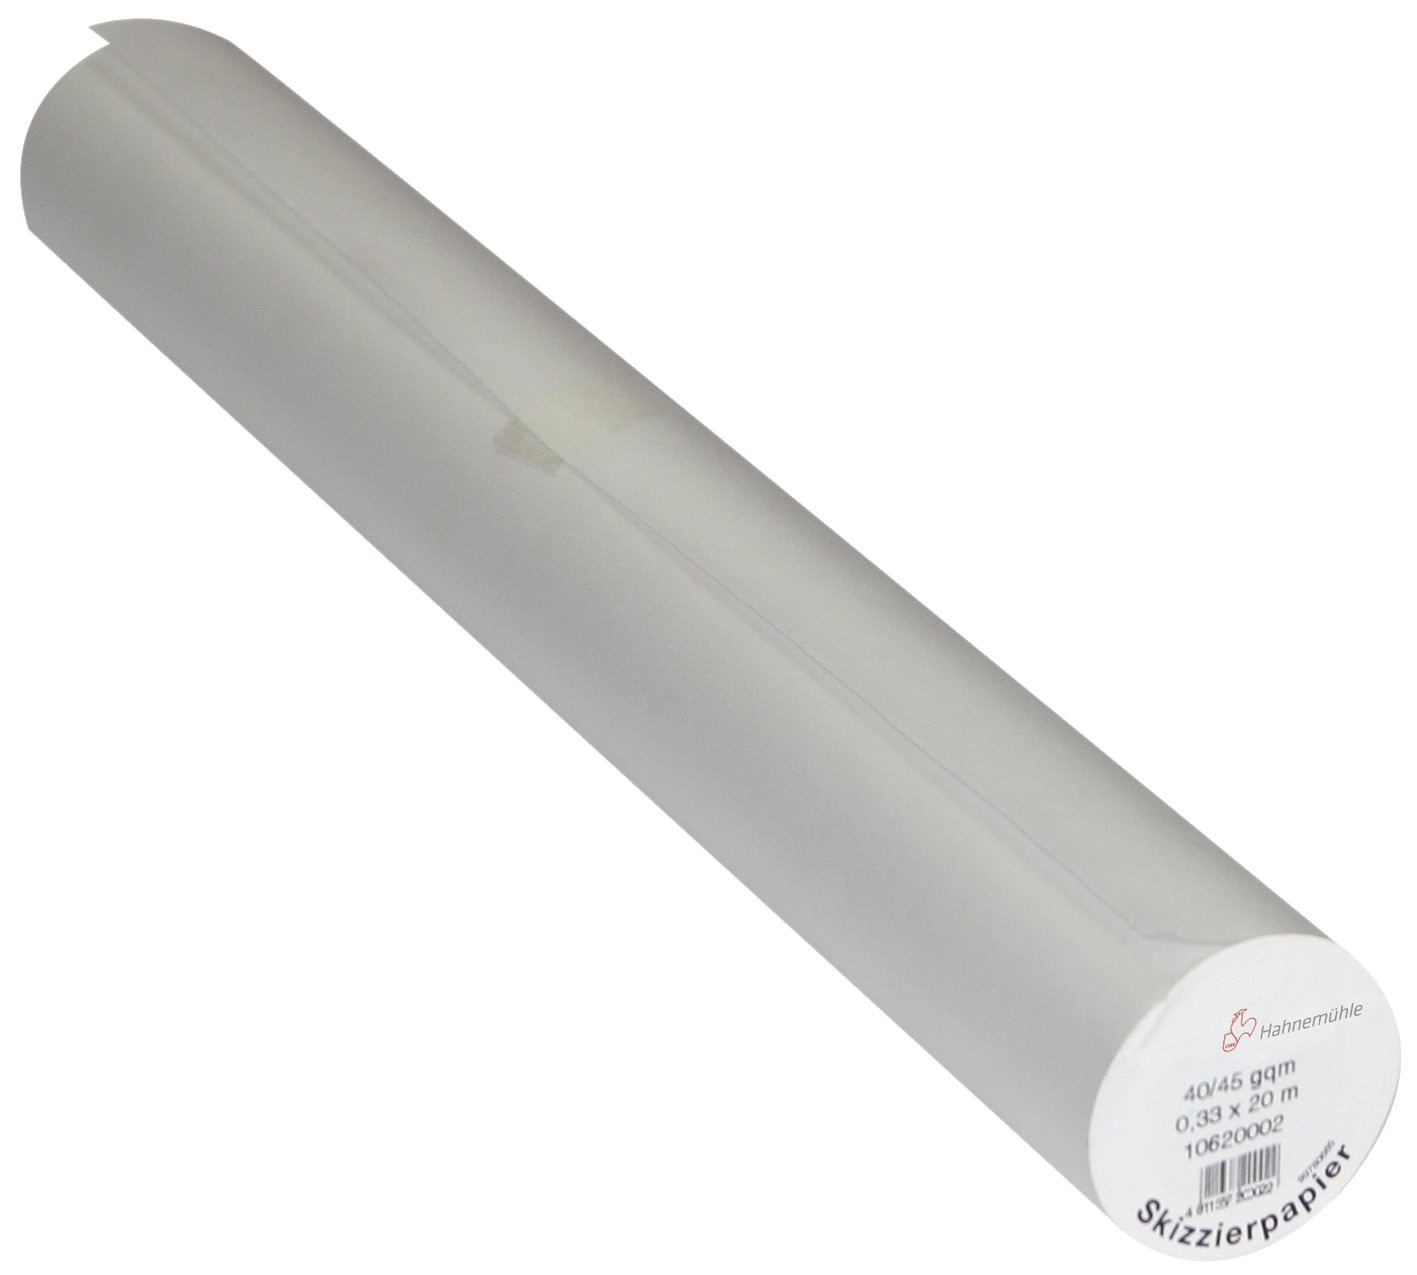 Hahnemuehle 10620002 Transparent Sketching Roll 0.33 x 20 m 40/45 g/m²